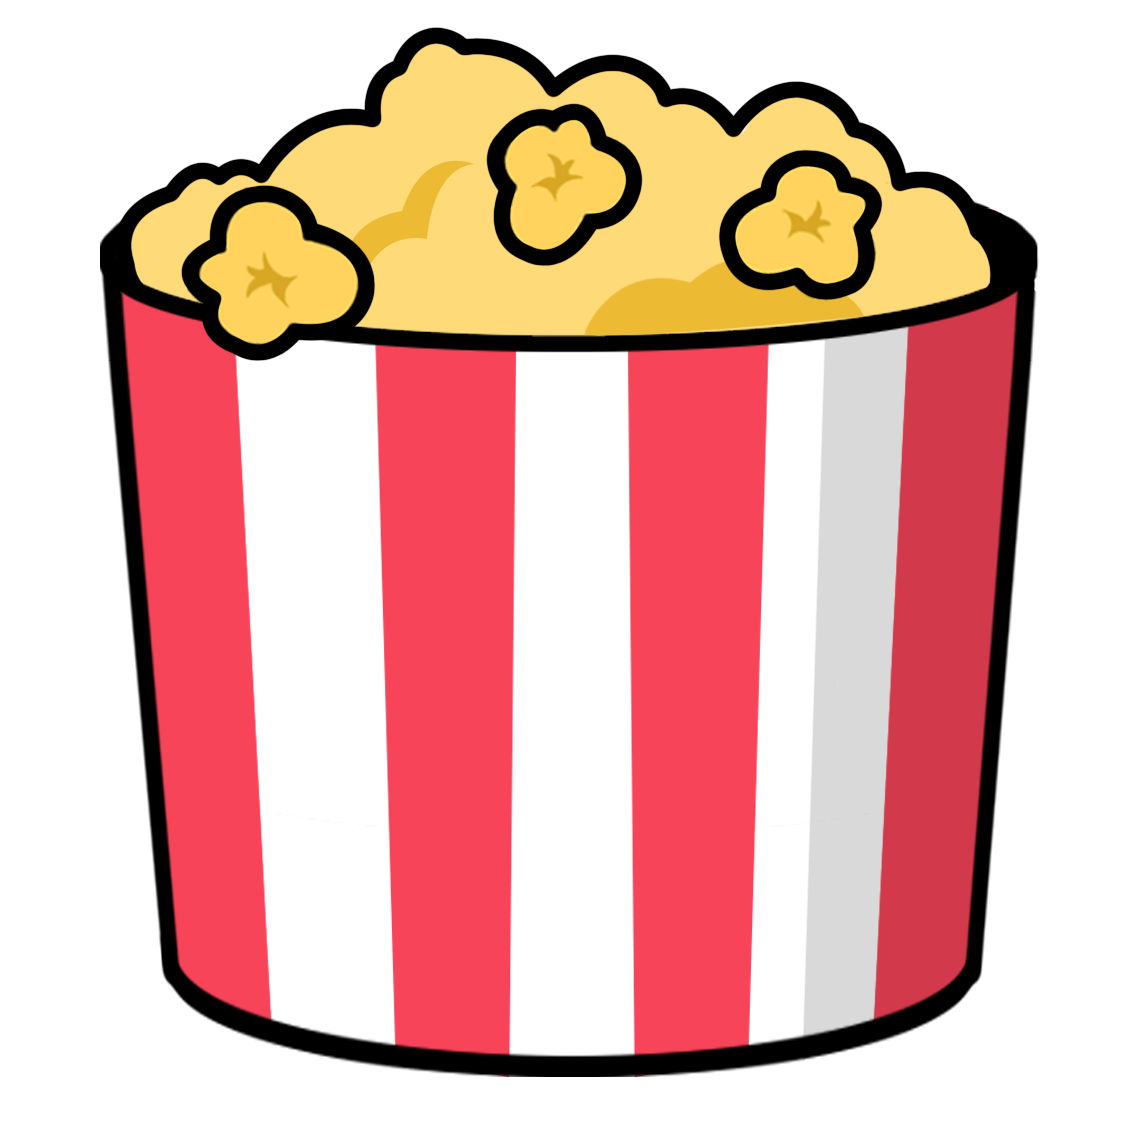 Popcorn free to use clipart 3.